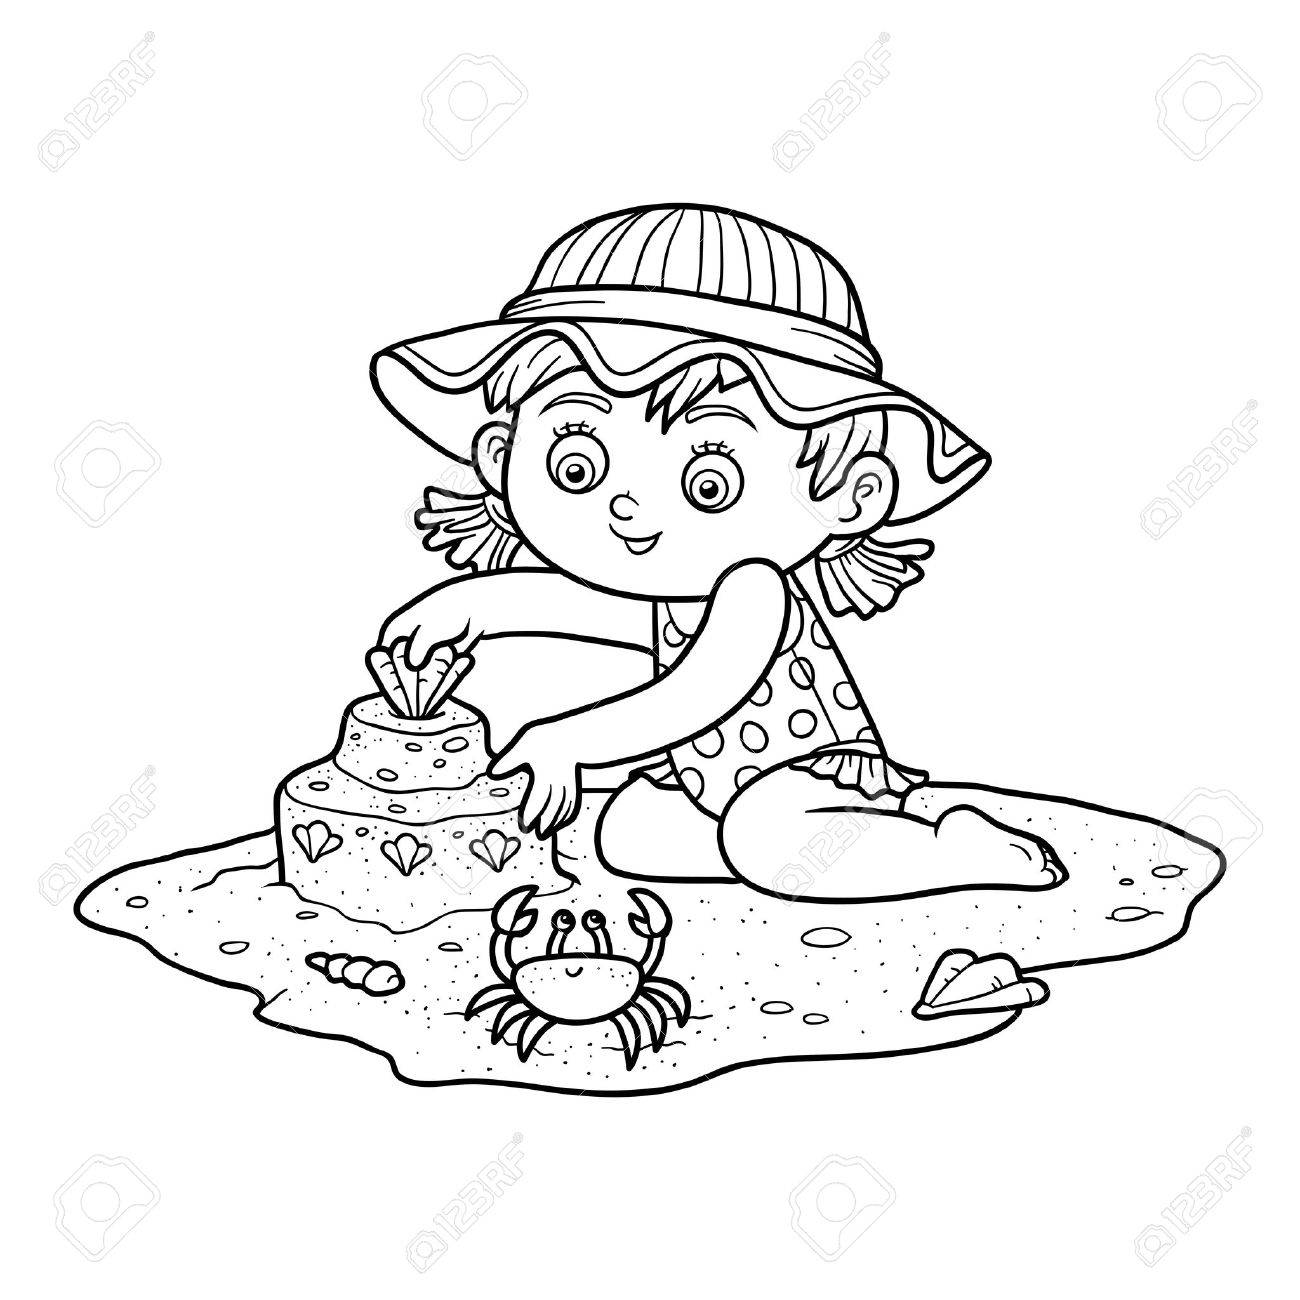 Coloring Book For Children Little Girl Builds A Sand Castle On The Beach Stock Vector